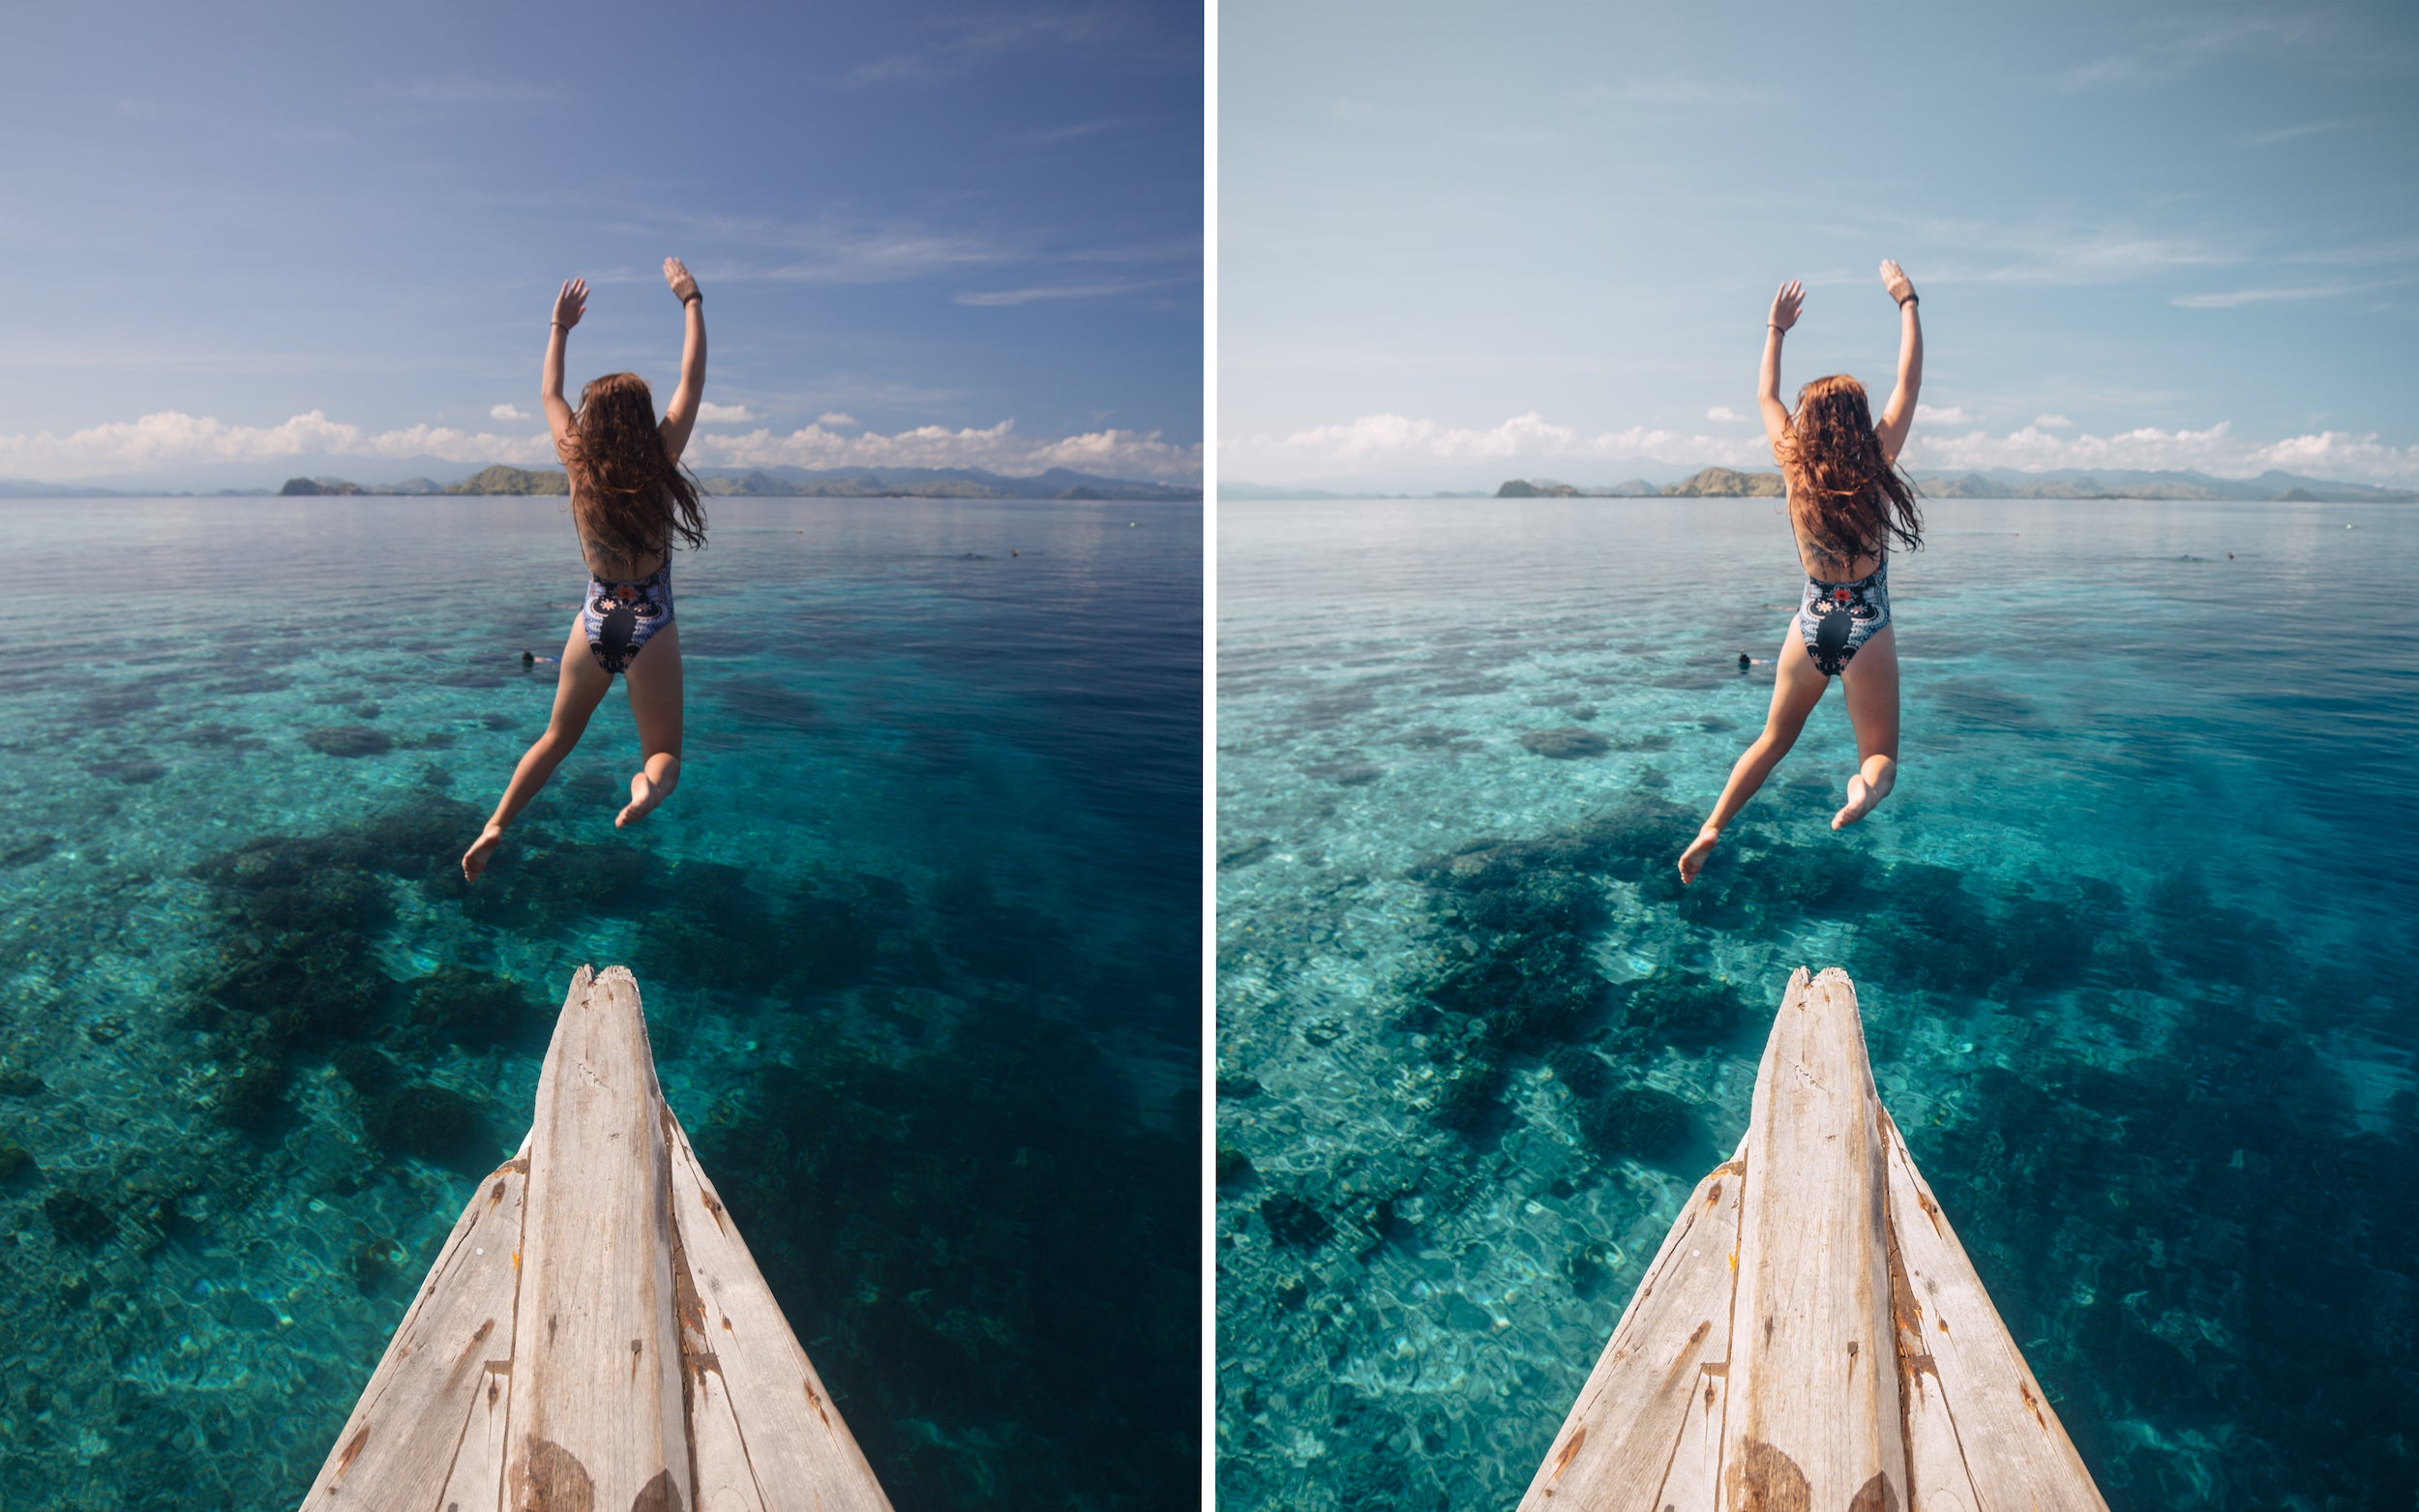 Before and after of @jordhammond Lightroom Tropical Preset - Girl jumping off jetty into ocean, Flores, Indonesia.